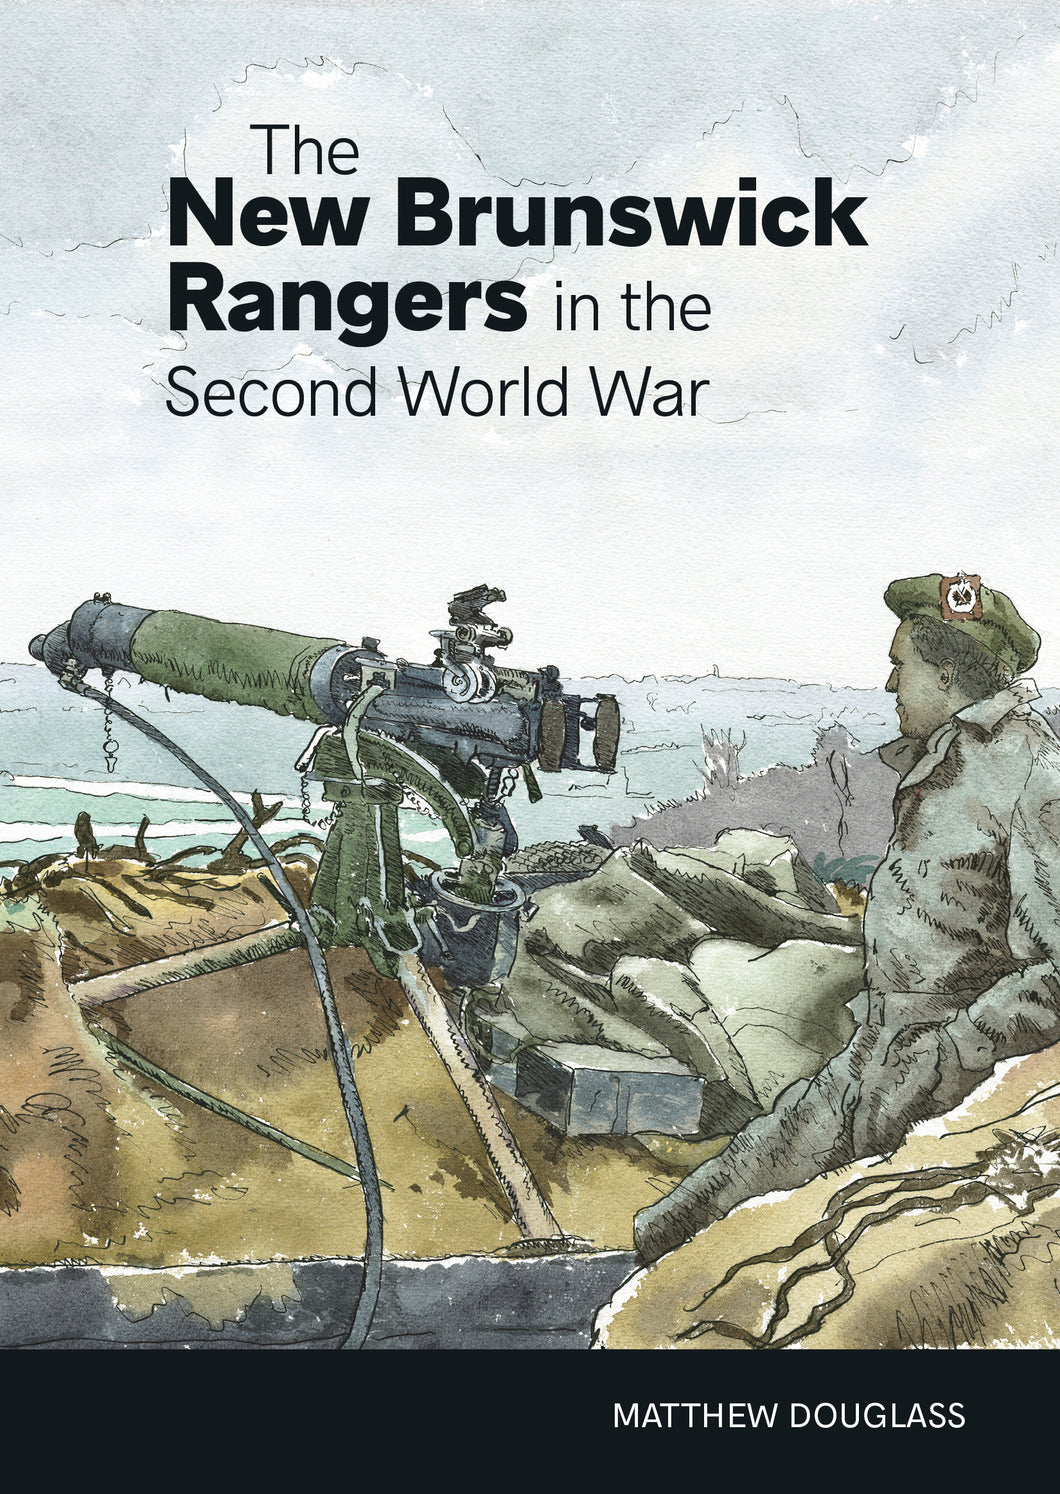 New Brunswick Rangers in the Second World War